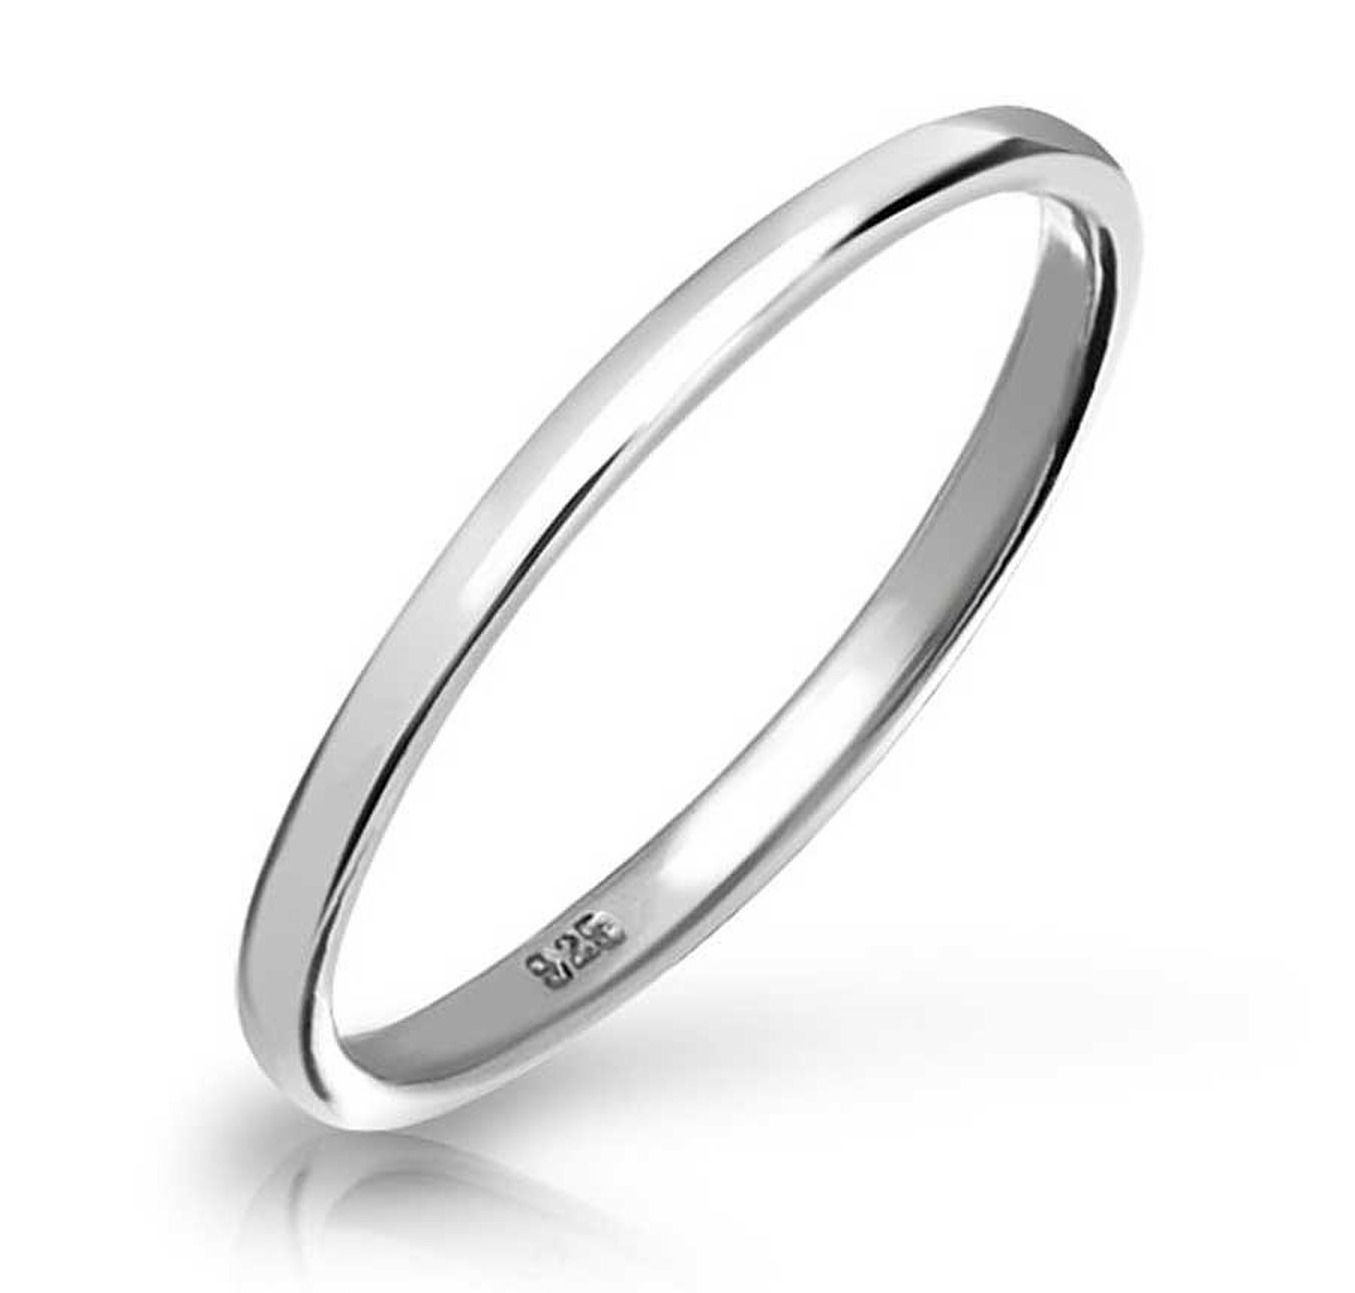 2mm wide plain sterling silver band wedding engagement